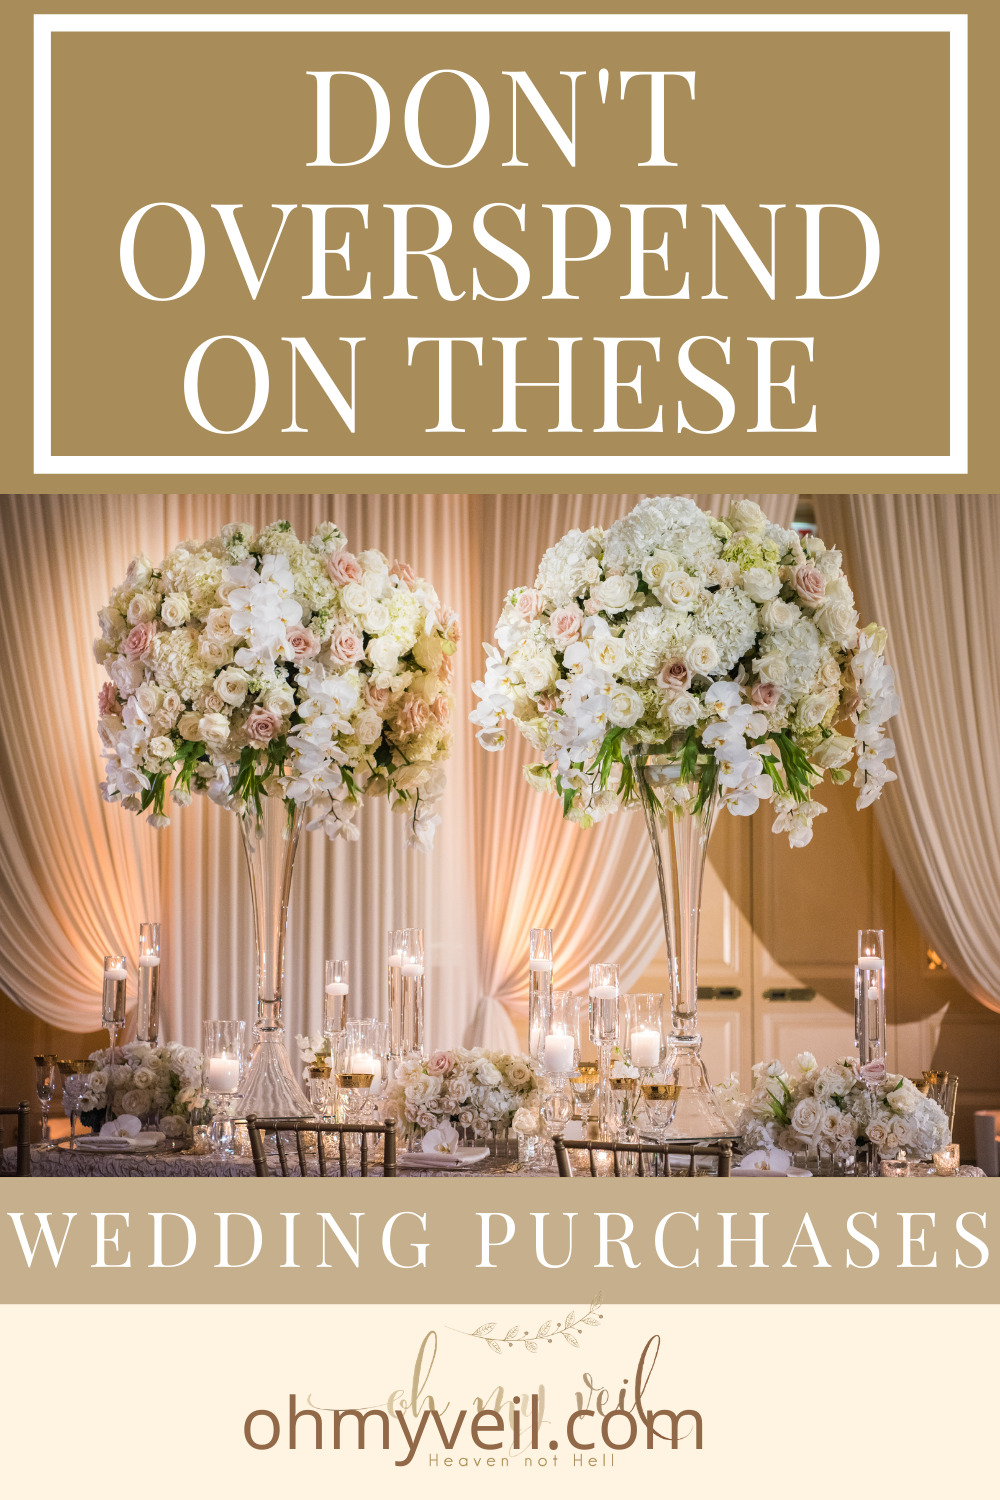 Ohmyveil.com is the best resource for every bride-to-be! Find out all the things you need to know while planning your wedding. Learn what parts of your wedding you're probably overspending on and find out how you can cut back in your budget!